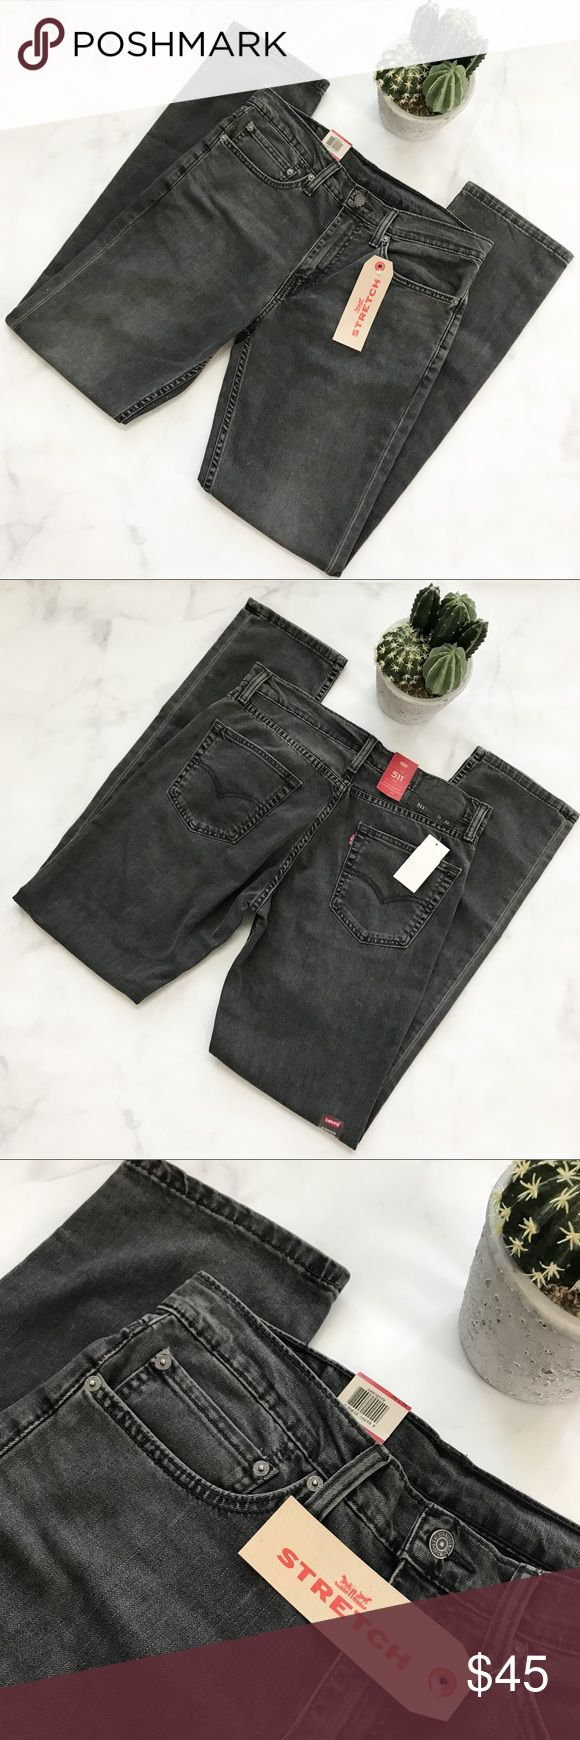 Men's 💪 Levi's 511 Slim 34x43 Faded Black Jeans Brand new with tags!   PRODUCT DETAILS: •Size: 34 x 34 •Colors: Faded Black / Gray •Made in Egypt  •Measurements: Length 44inch, Rise 11inch •511 Slim Fit  •Sits Below Waist •Slim From Hip To Ankle  •Stretch Denim Construction, engineered for comfort •MSRP: $69.50!  •Machine Wash  • 93% cotton, 5% Elastomultiester, 2% Elastane   Tags: Denim Guys Boys Levi Levis Levi's Jeans Slim